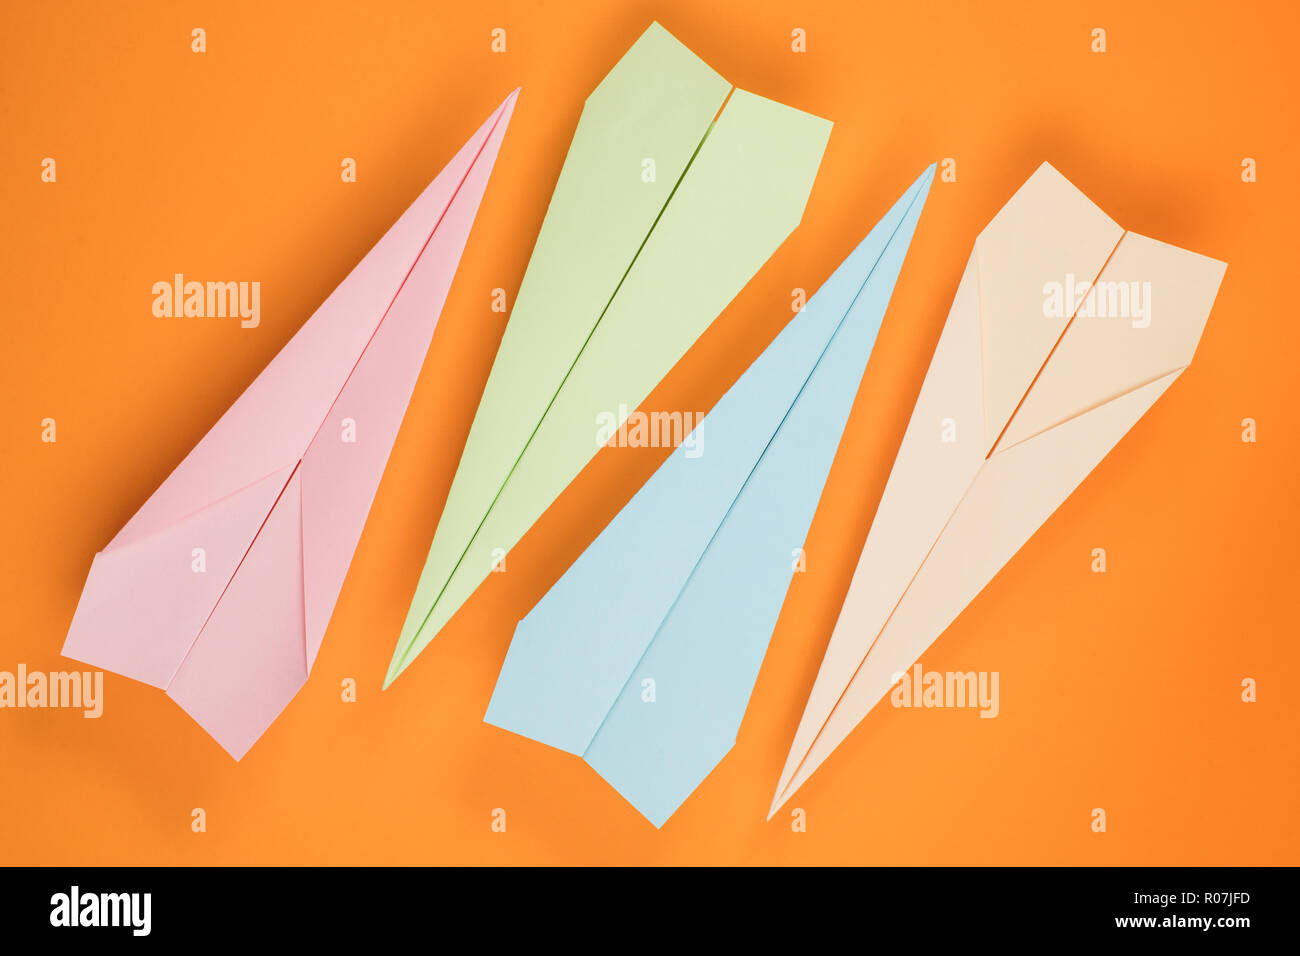 Colored paper planes on orange paper background. Top view - Stock Image